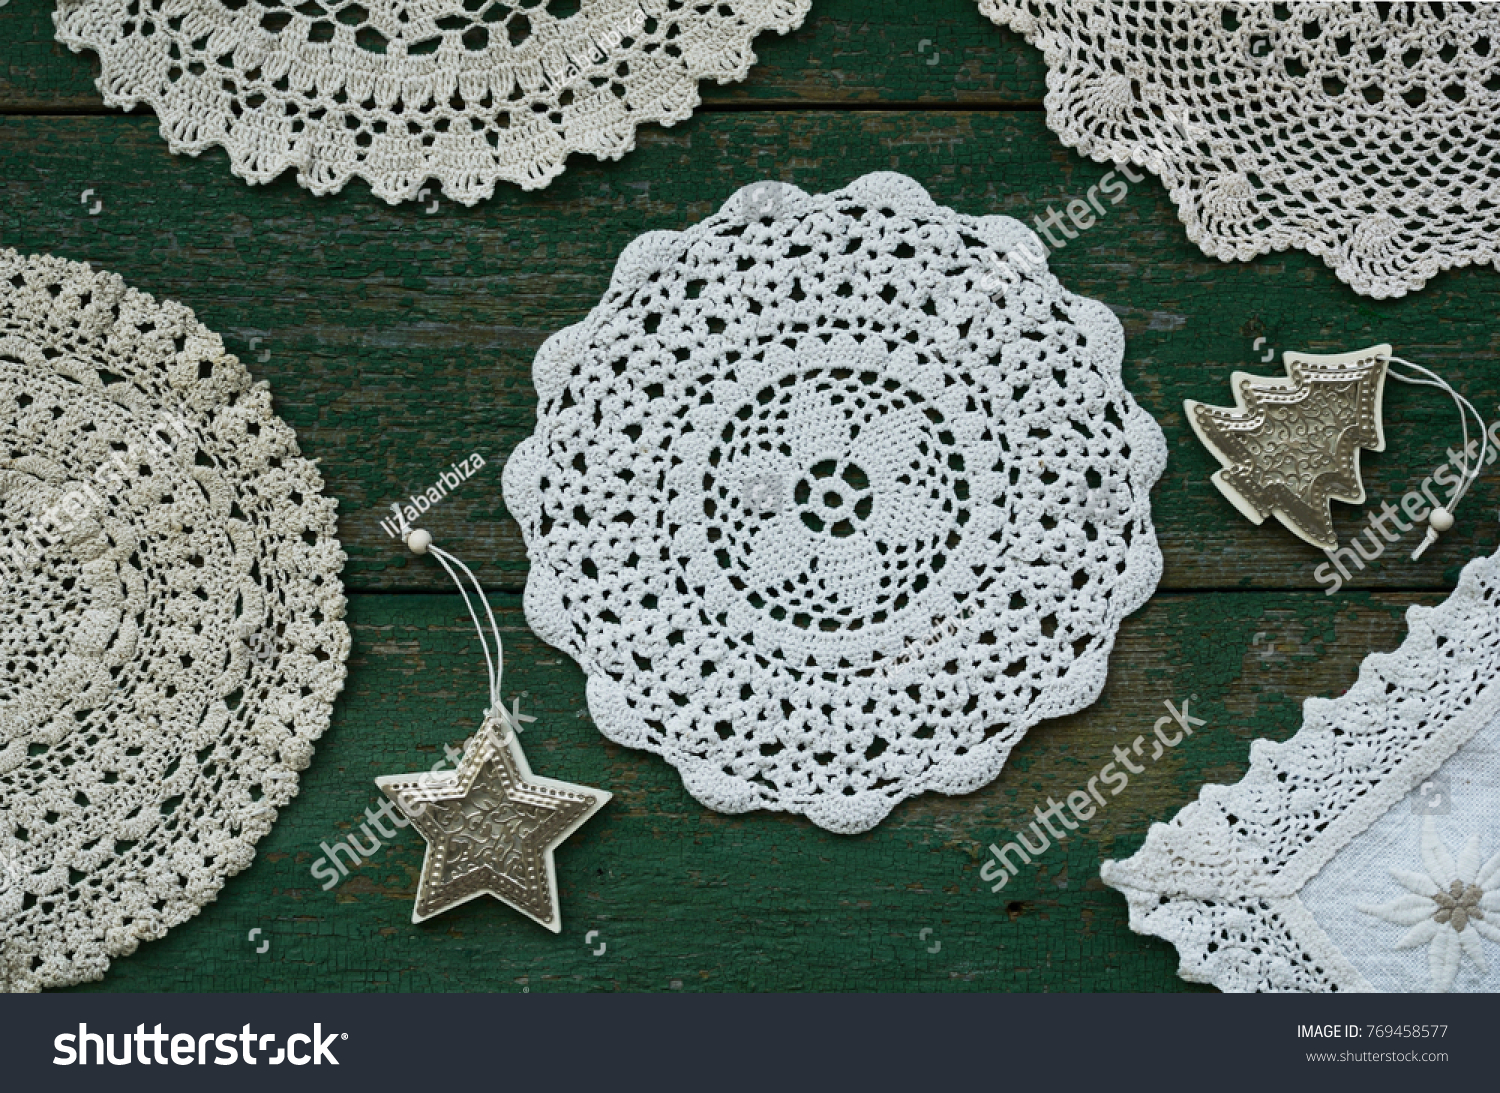 Winter Background Collection Vintage Lace Doilies Stock Photo ...